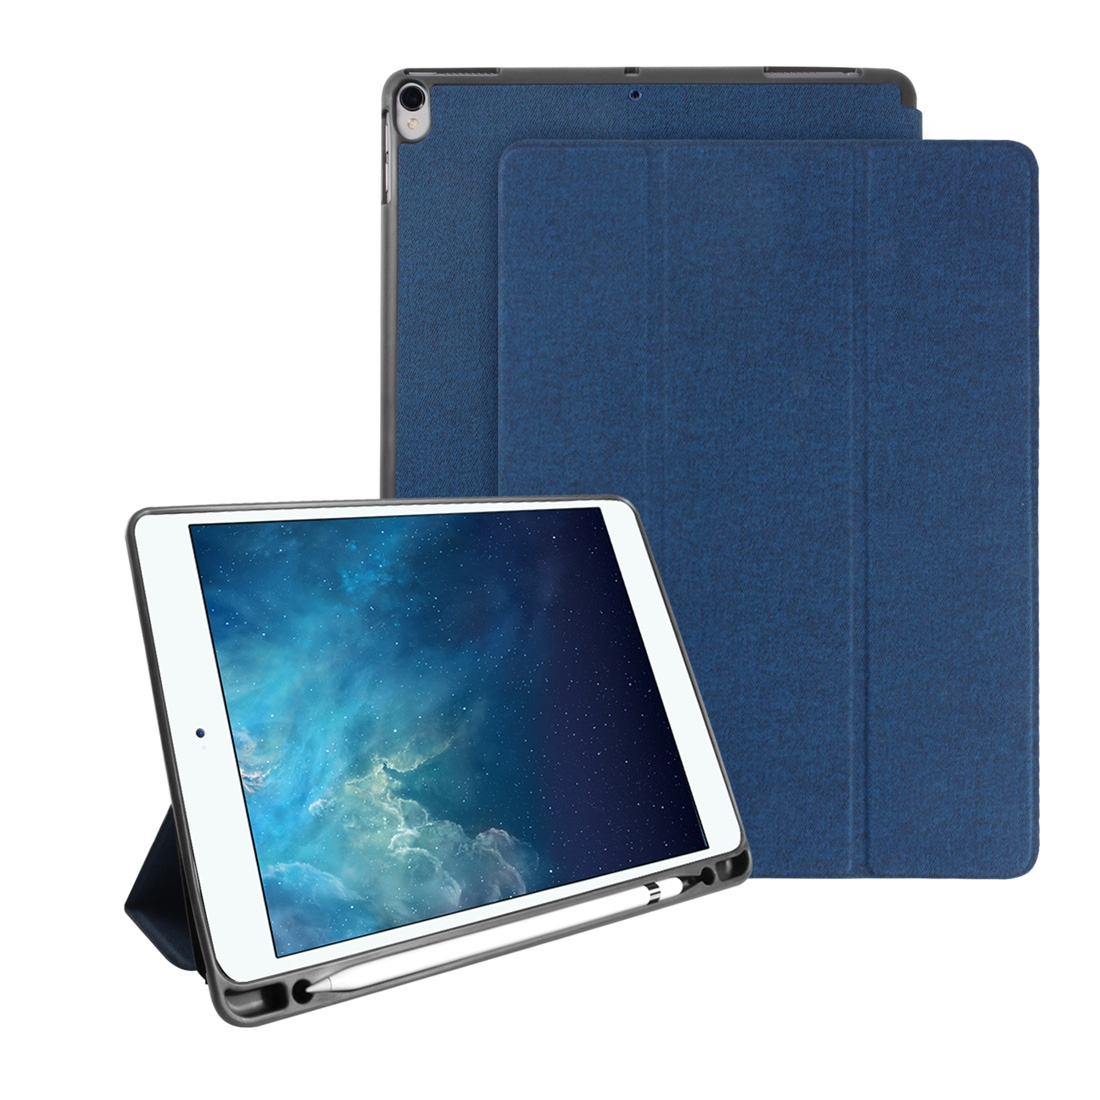 Mutural Exquisite Series Cloth Texture PU+TPU Leather Case for iPad Pro 10.5 inch, with 3-Fold Holder & Pen Slot & Sleep & Wake-up Function (Blue)